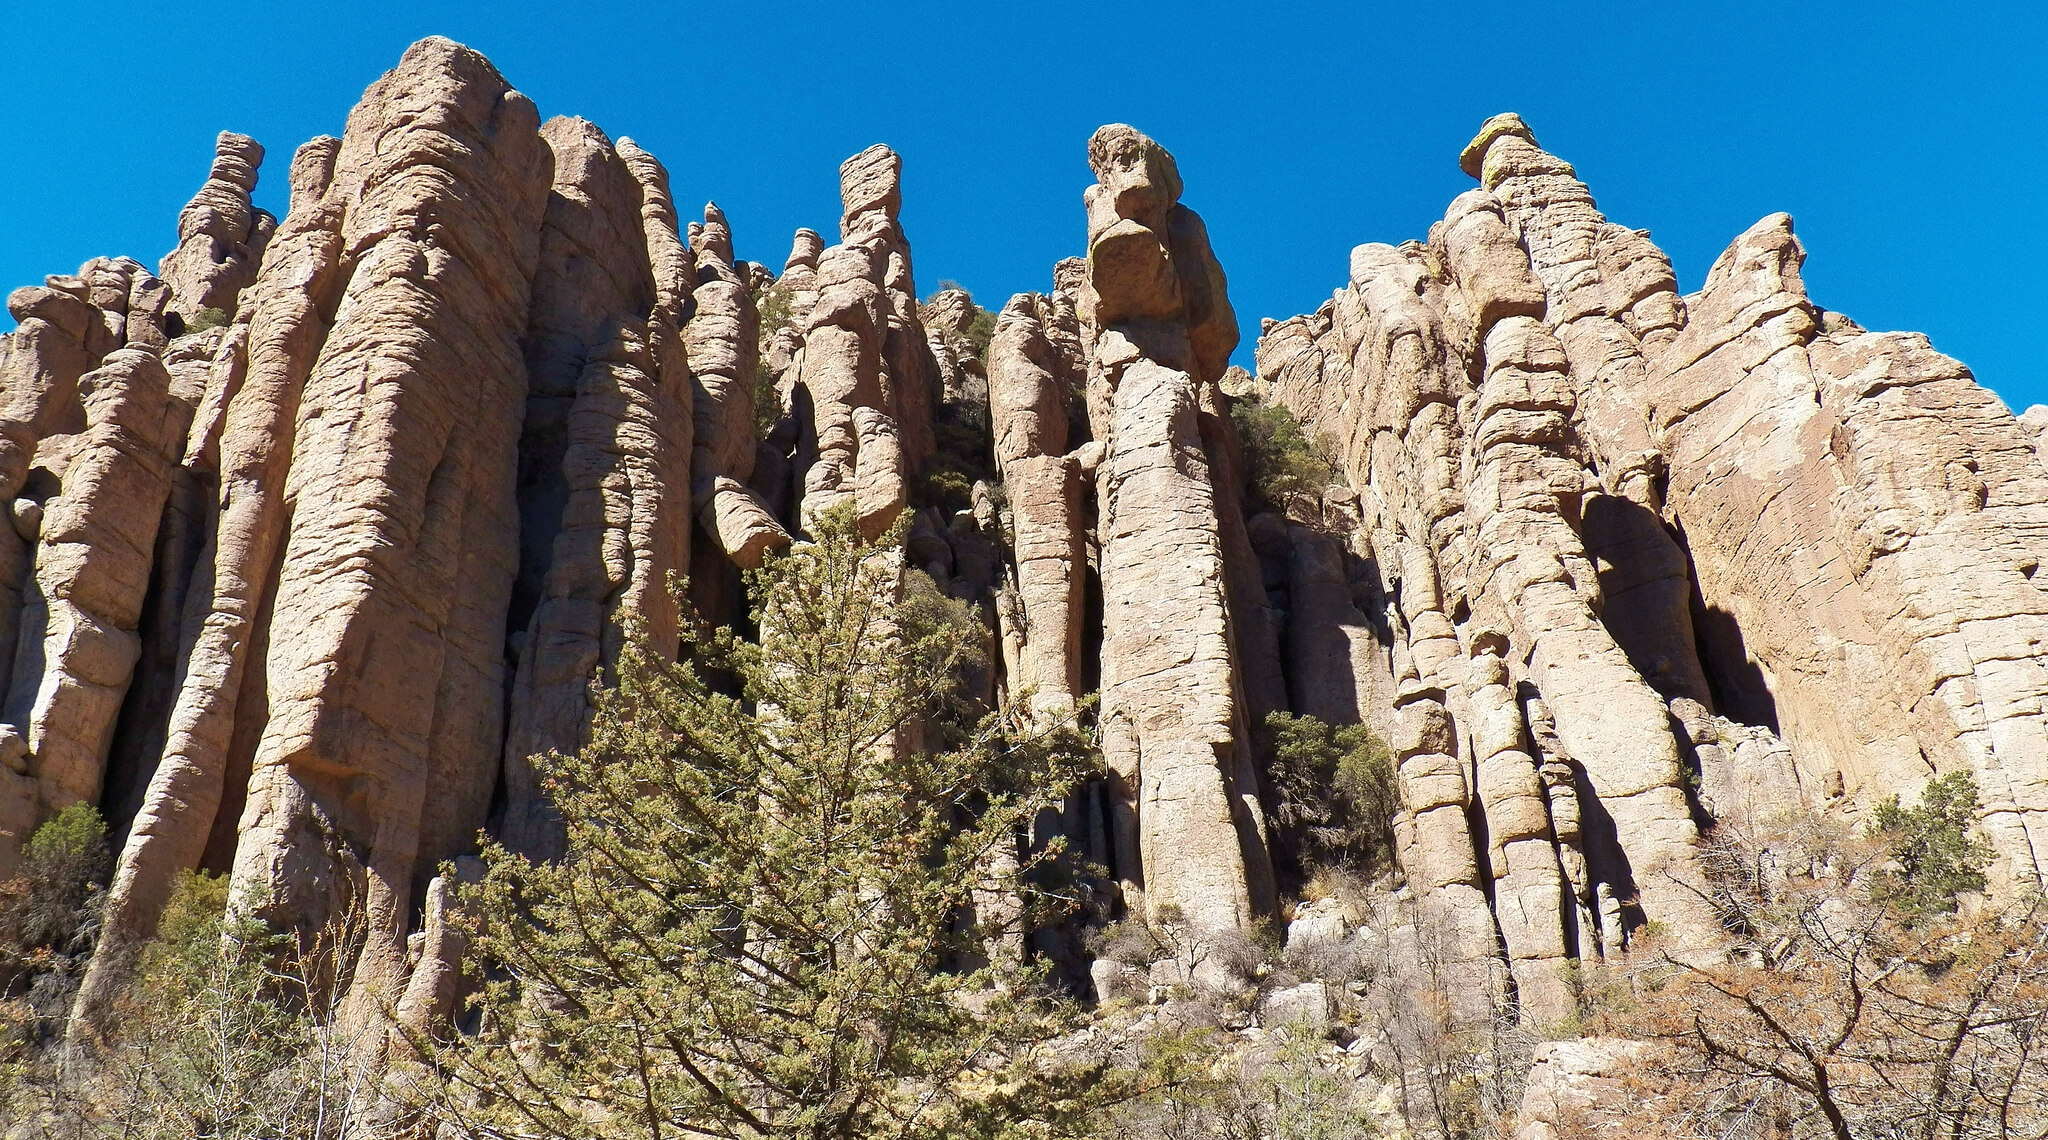 5 Awesome Reasons Why Chiricahua National Monument is the Coolest Monument You've Never Heard Of